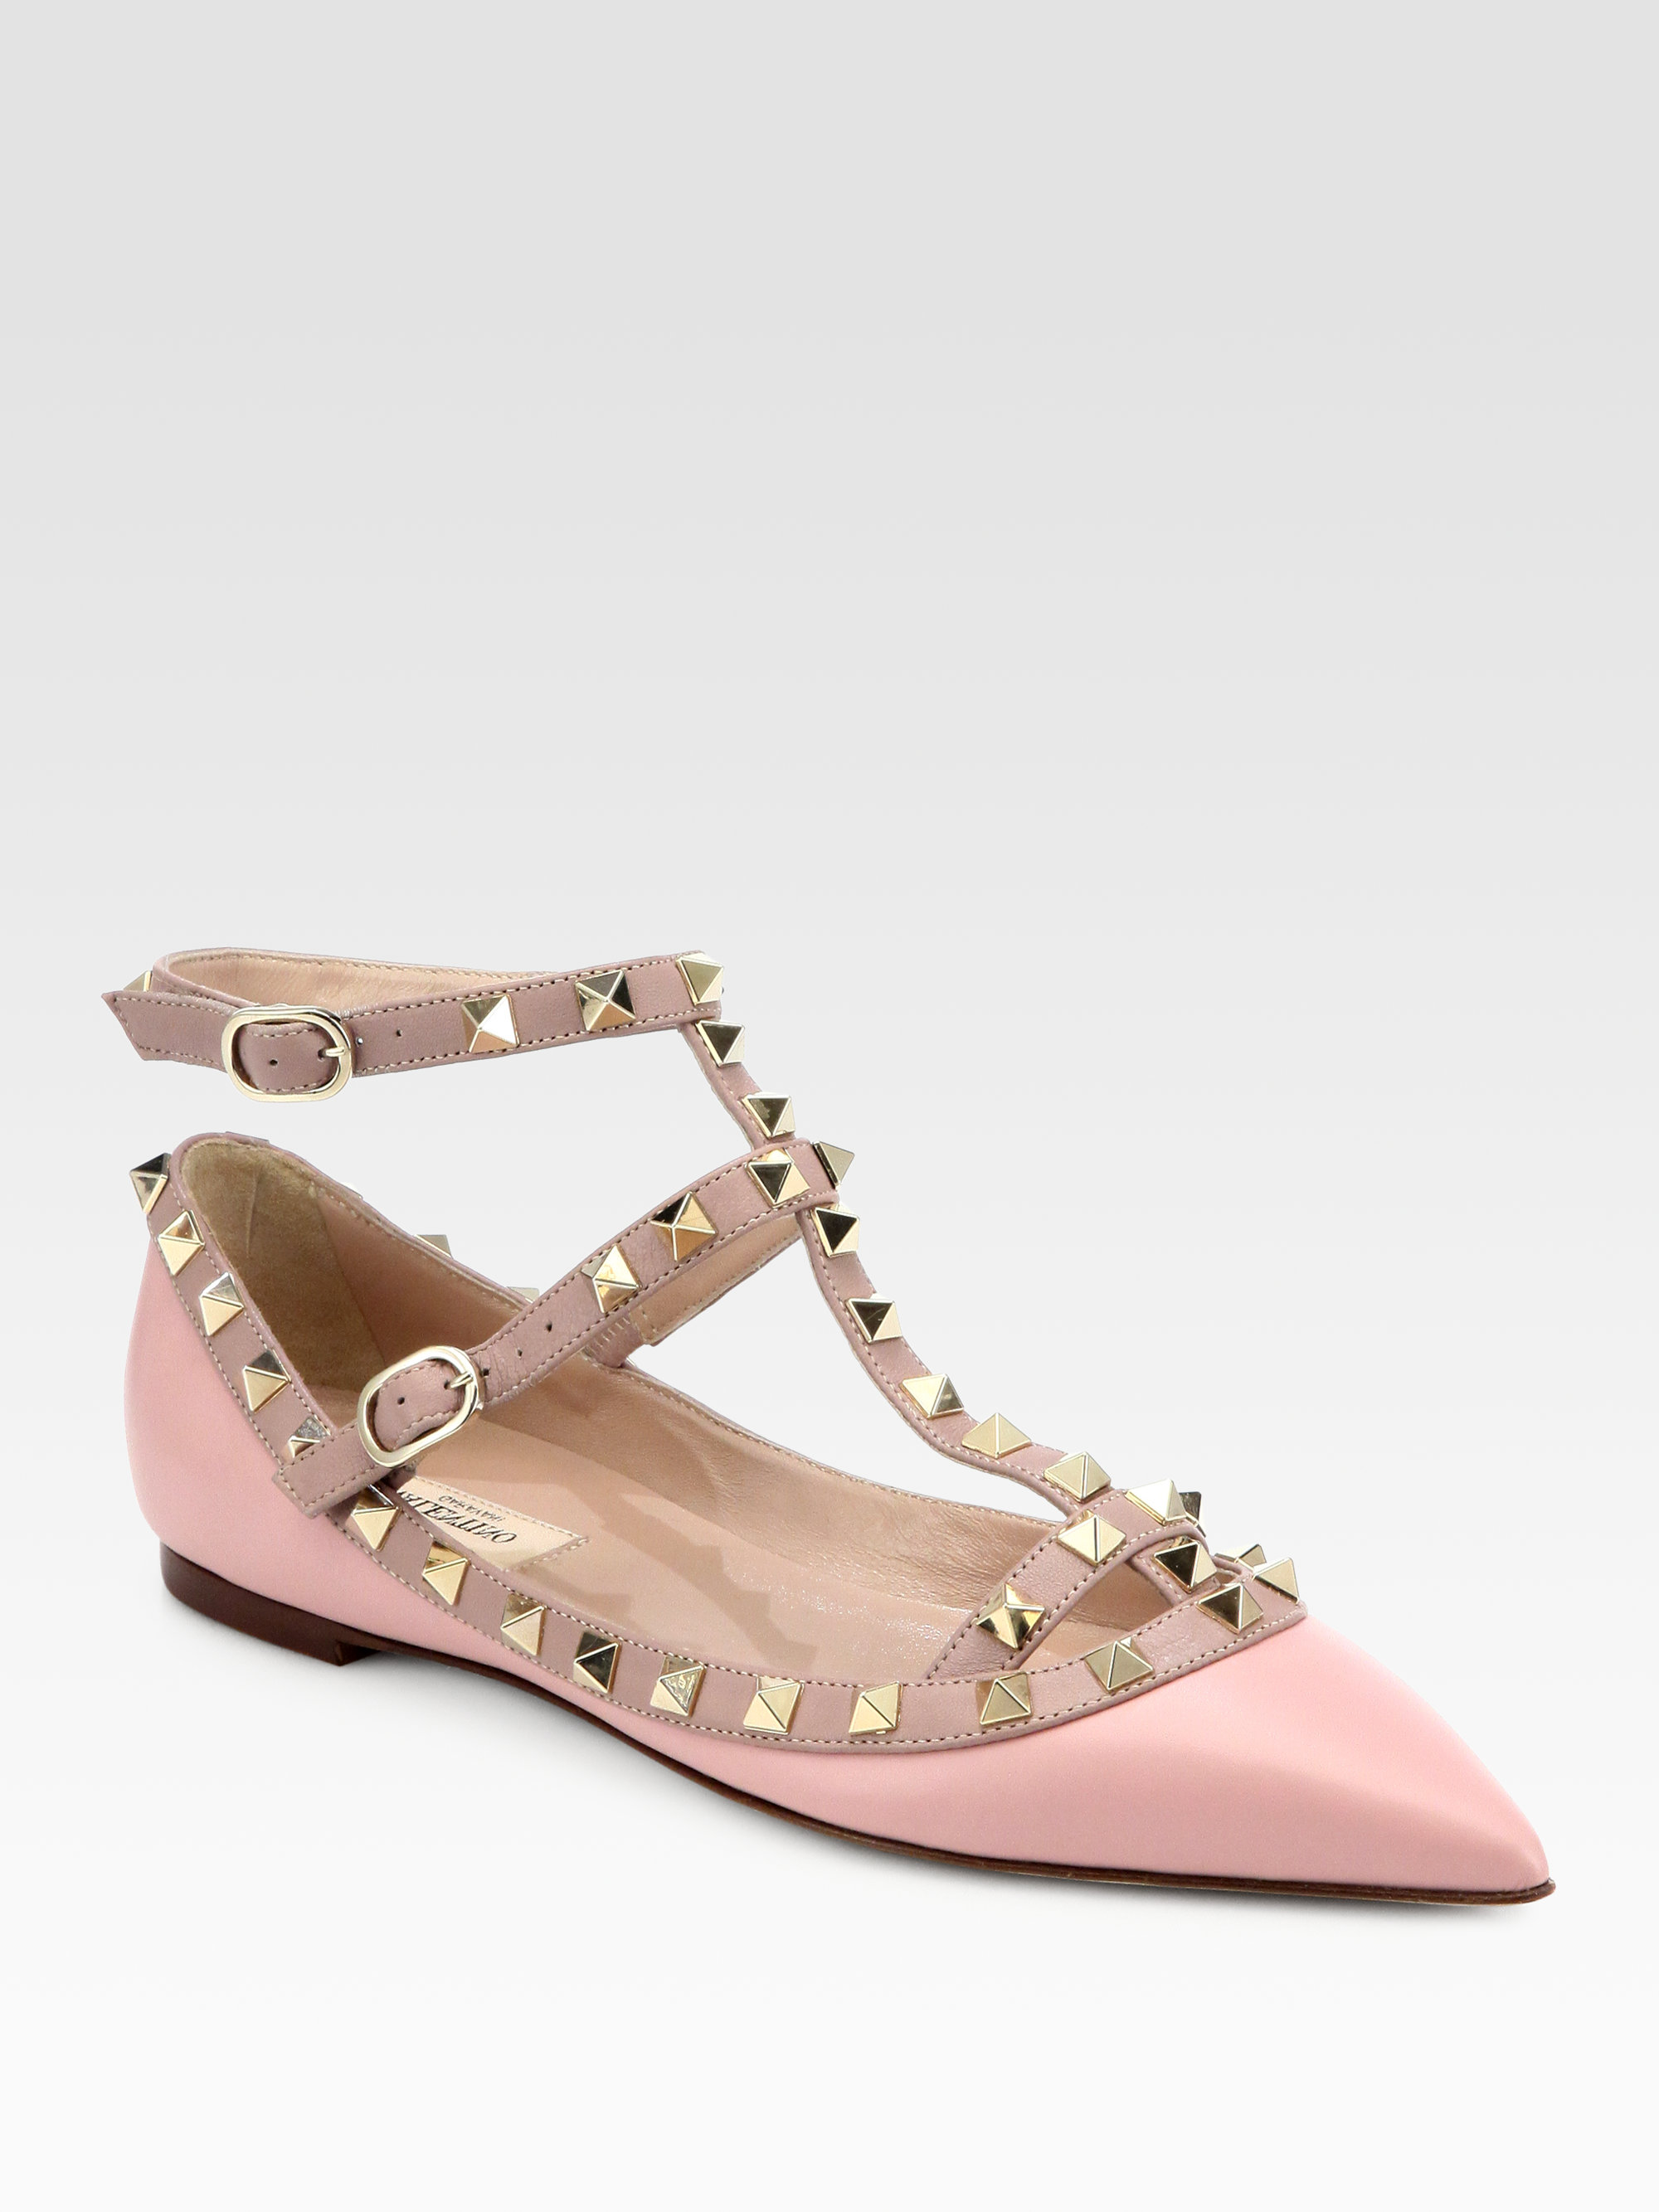 valentino leather rockstud cage flats in pink light pink lyst. Black Bedroom Furniture Sets. Home Design Ideas